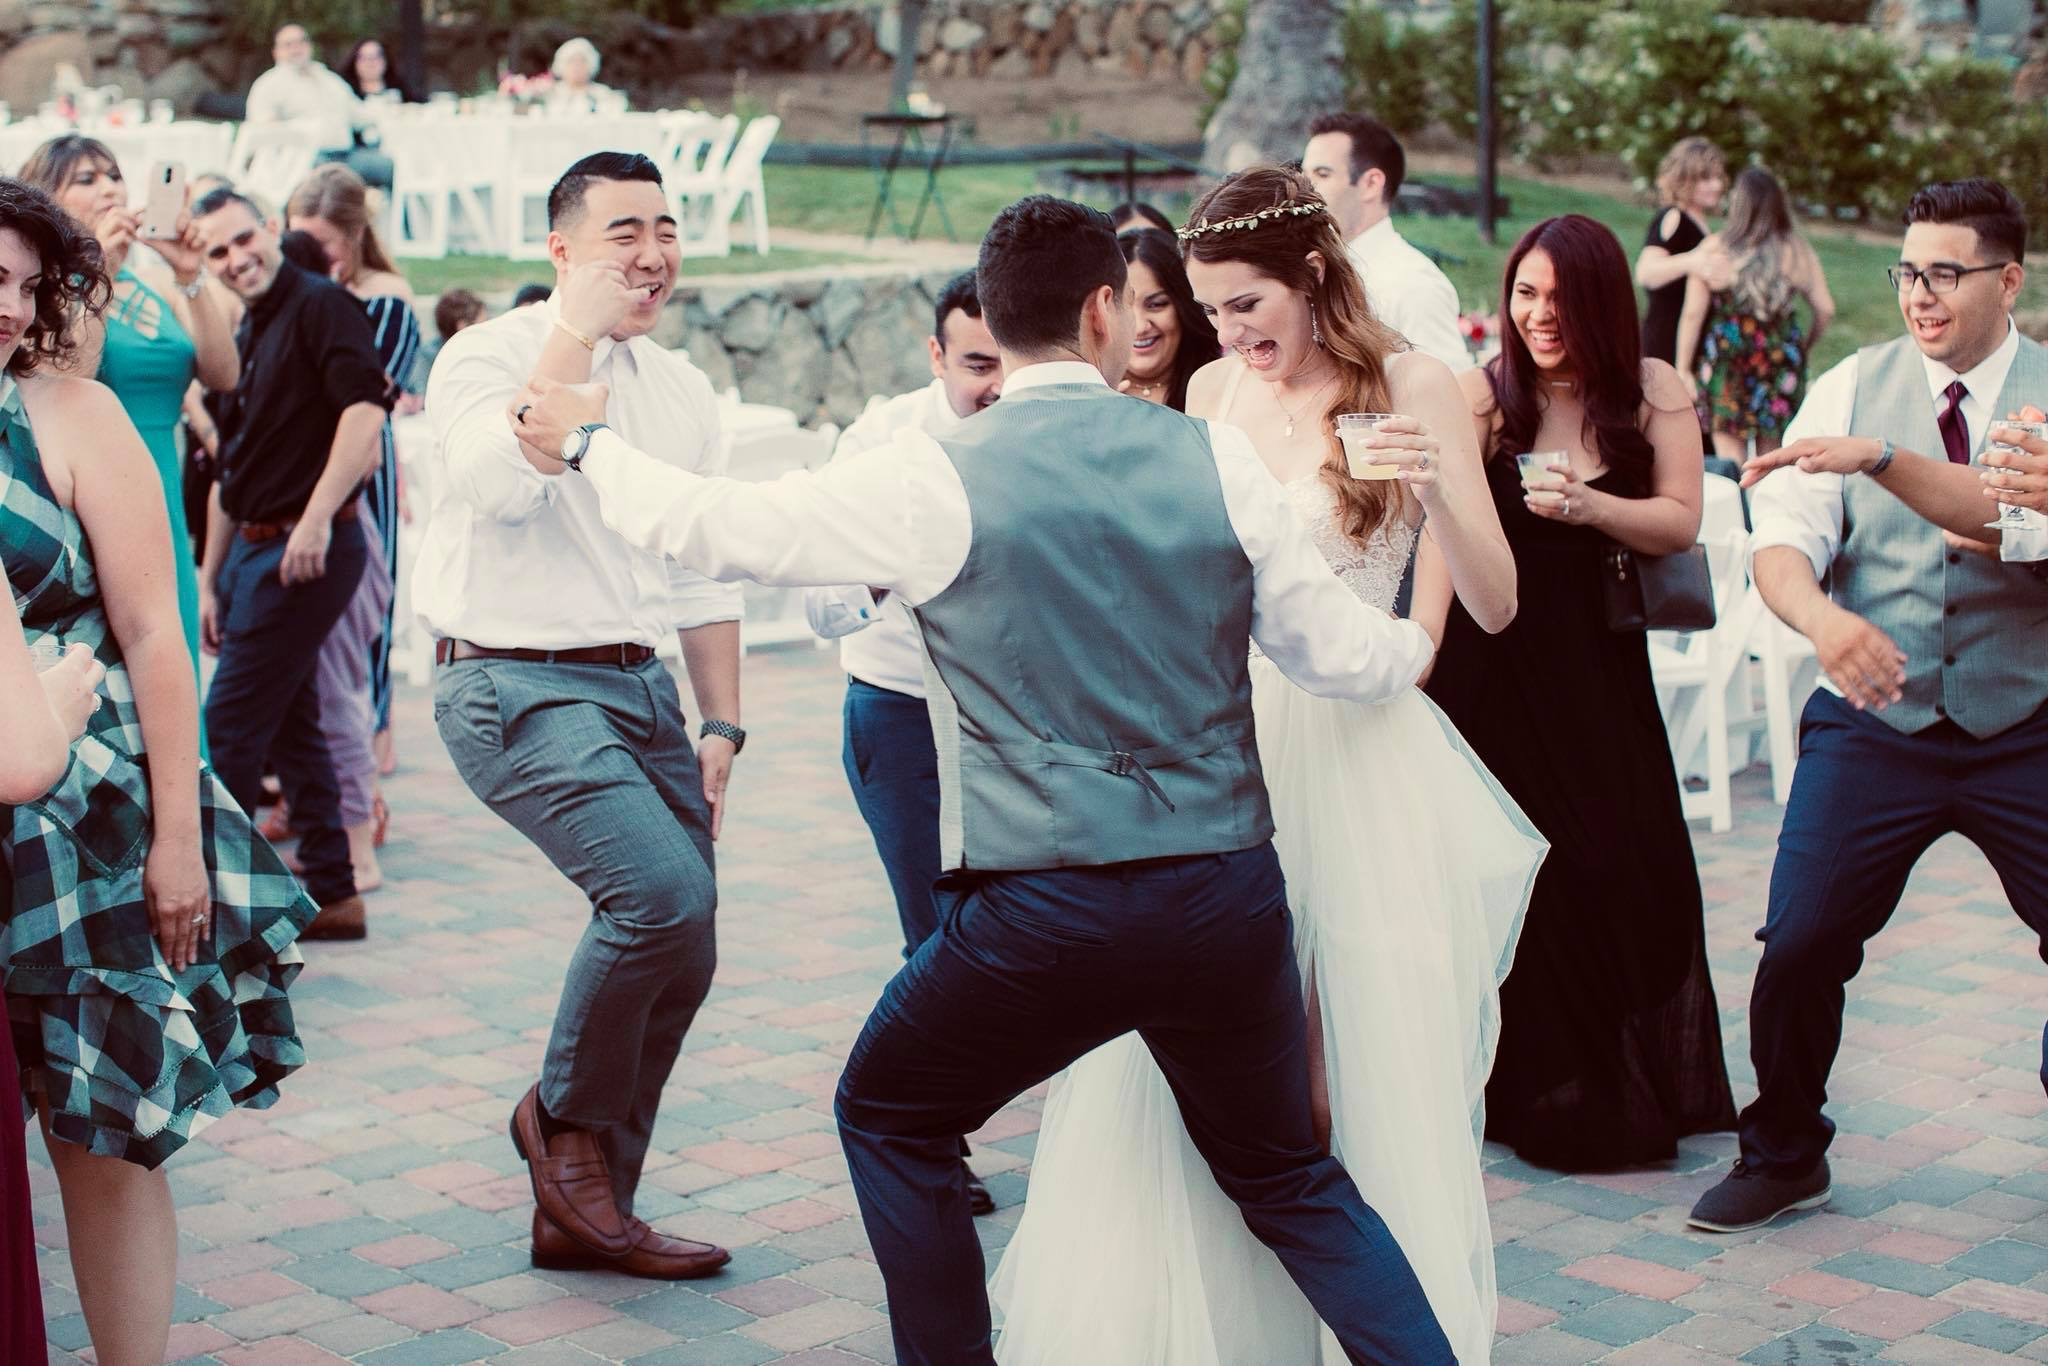 Our most popular services in the Ramona area are: Wedding DJ /MC,Wedding Guitarists, and Uplightingfor Receptions, Cocktail Hours, and Wedding Receptions -